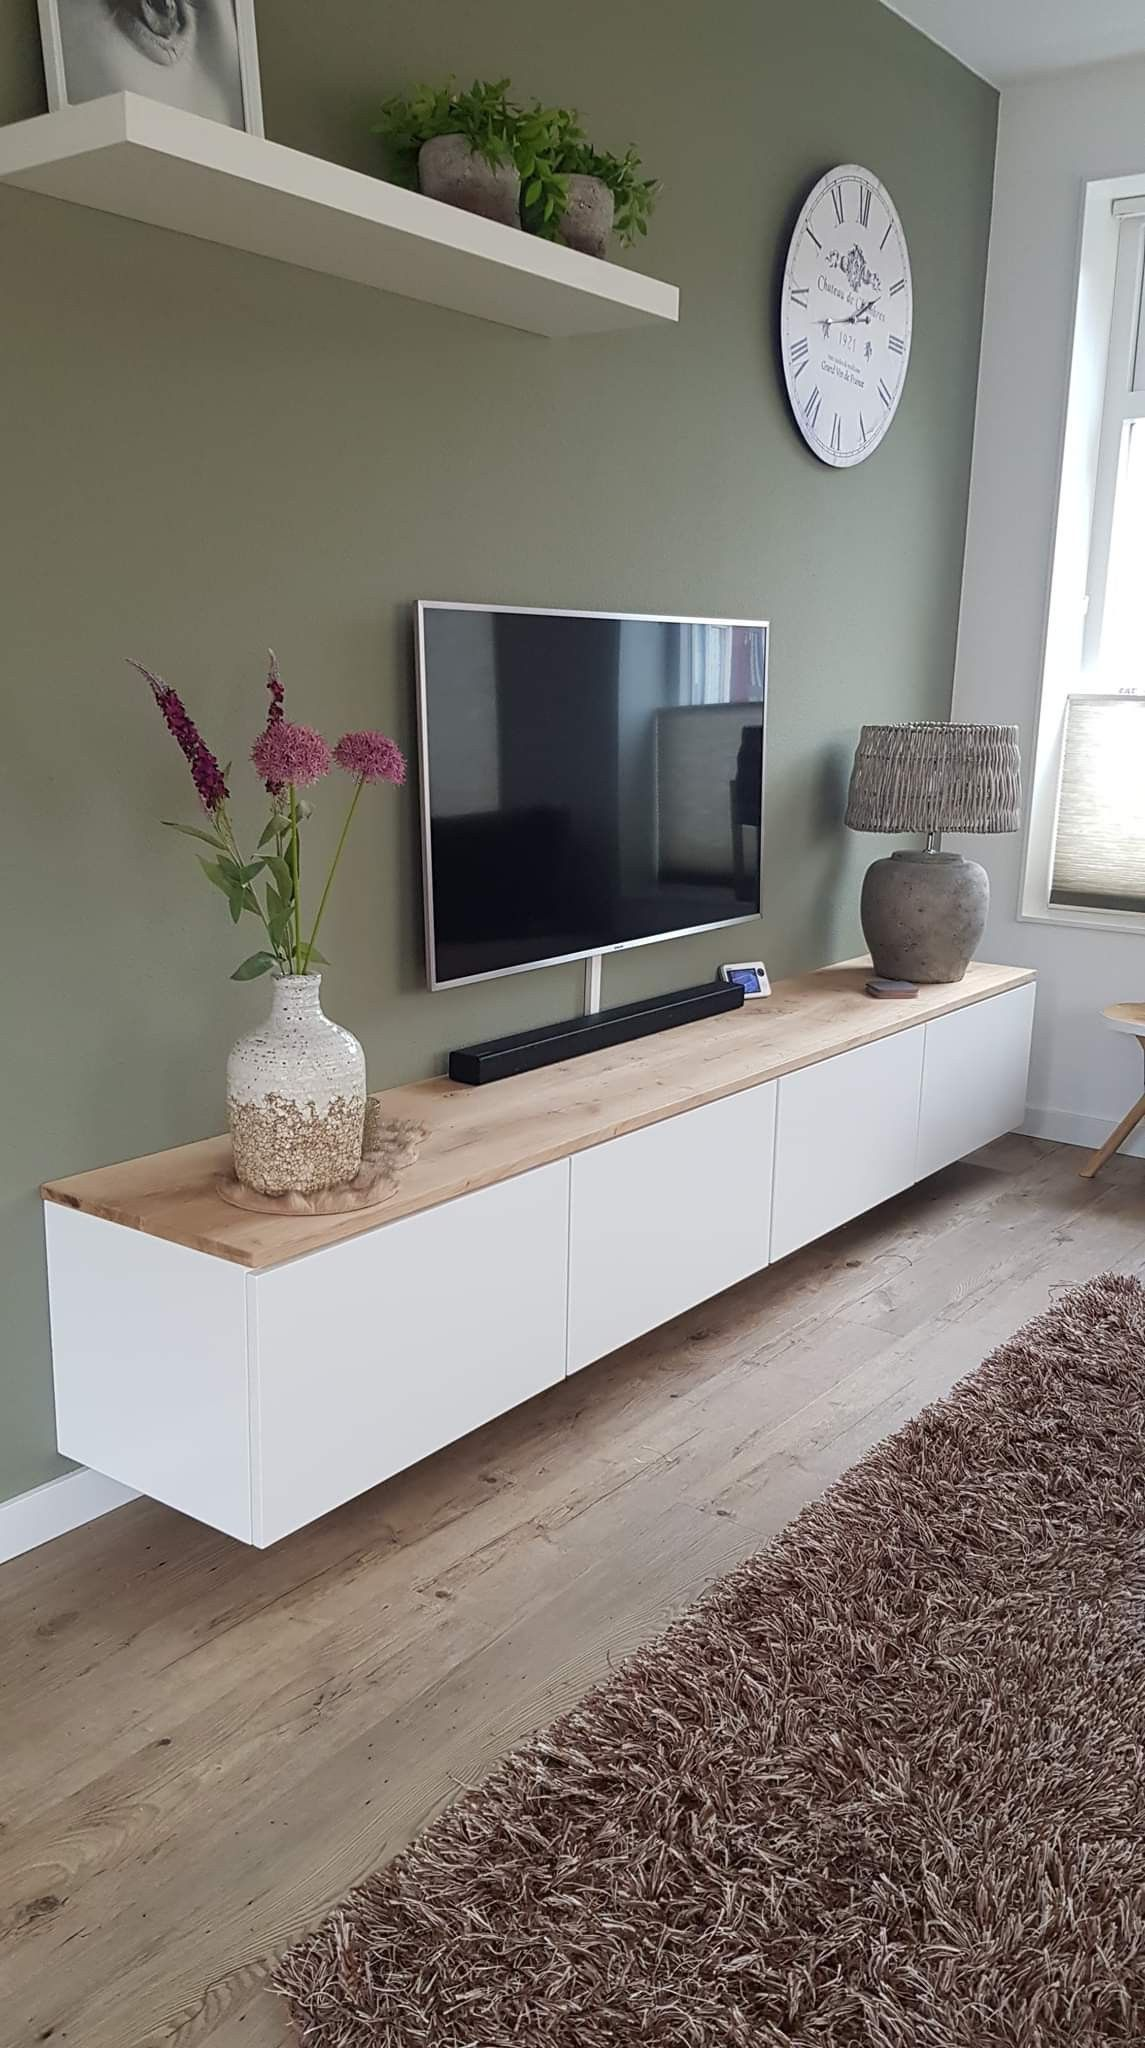 Design Hoogglans Tv Meubel.Tv Meubel Hoogglans Wit Met Massief Eiken Blad Living Room Decor